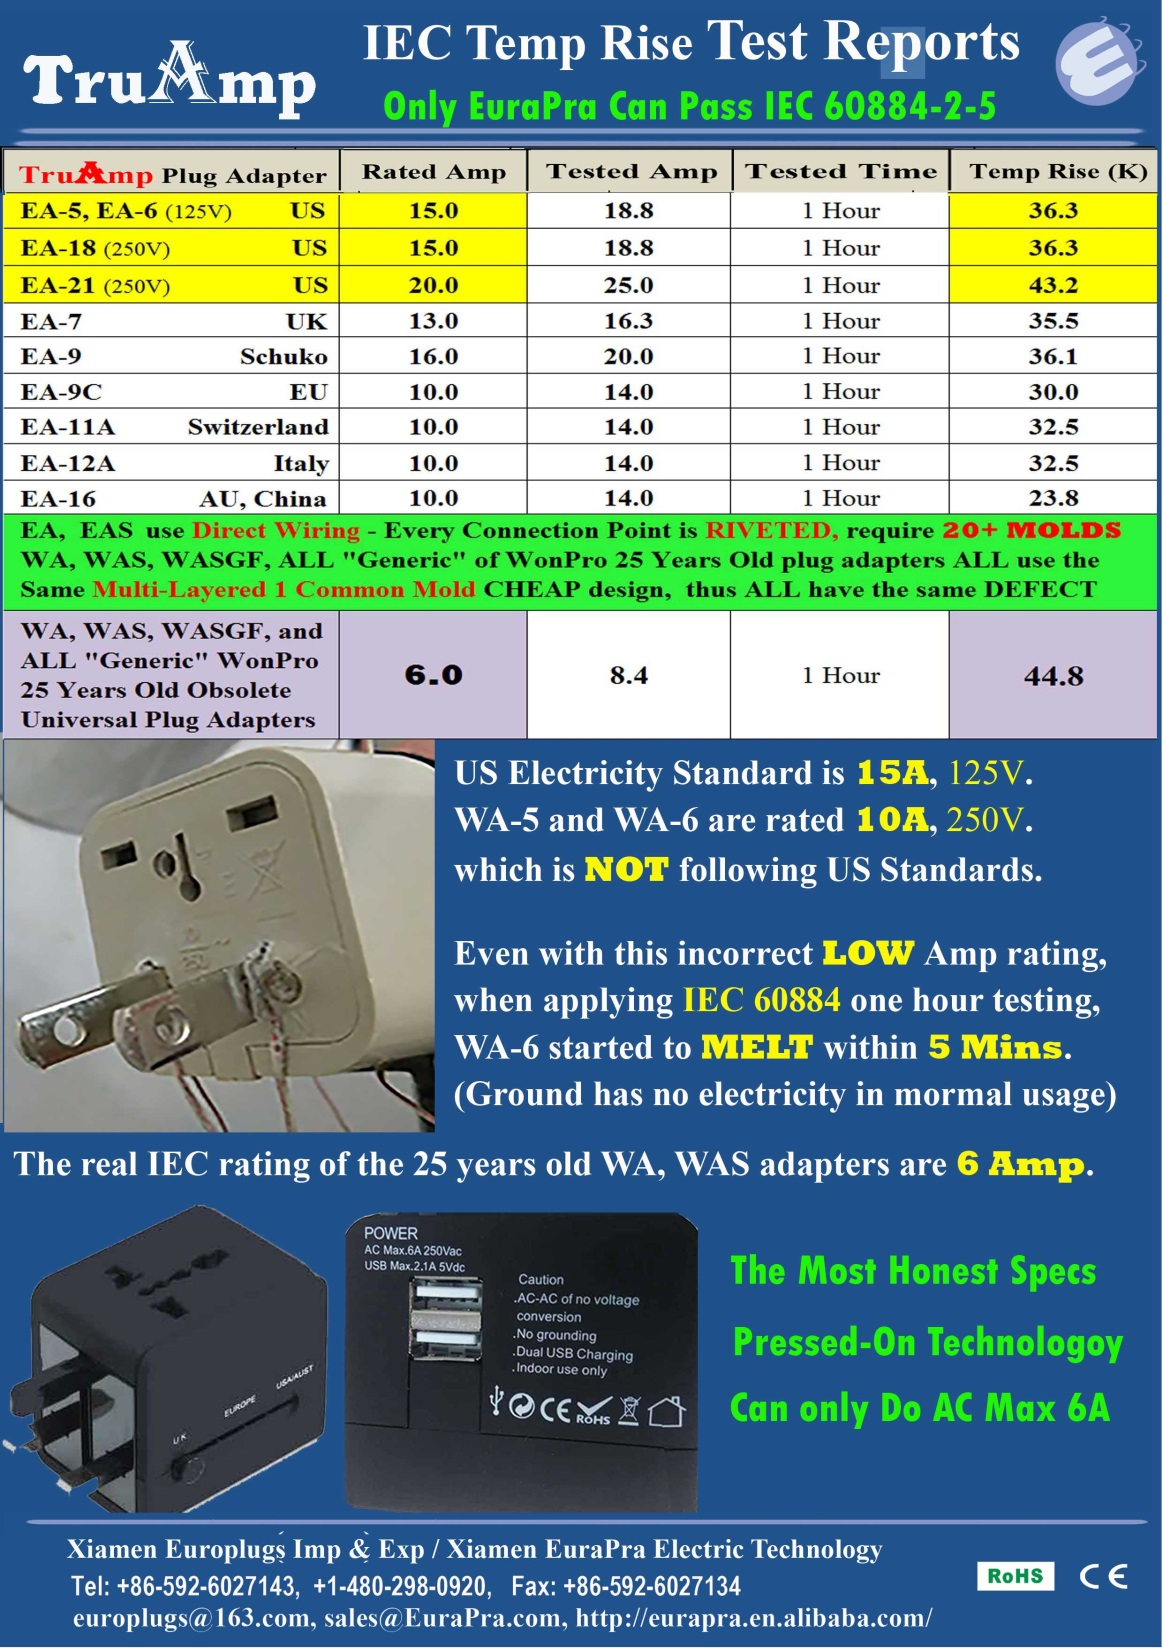 hight resolution of link to electrical and plug adapter details for all 195 countries in the world